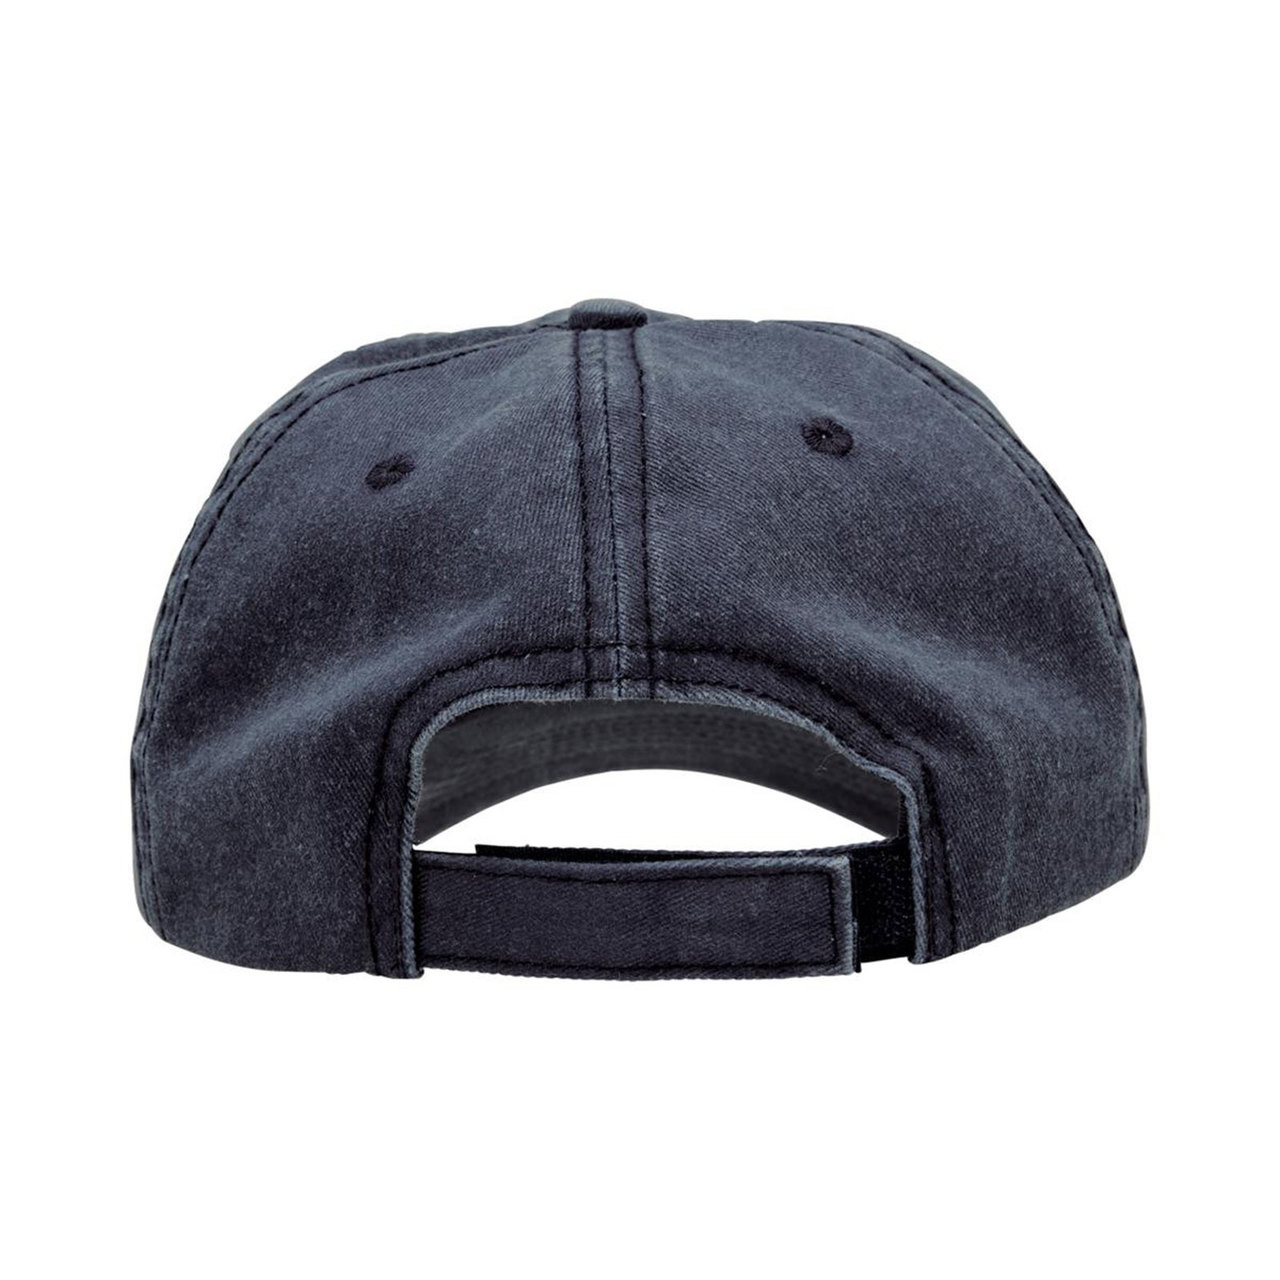 4493a515c Wholesale Distressed Washed Chino Baseball Cap | Buy Plain Hats Online